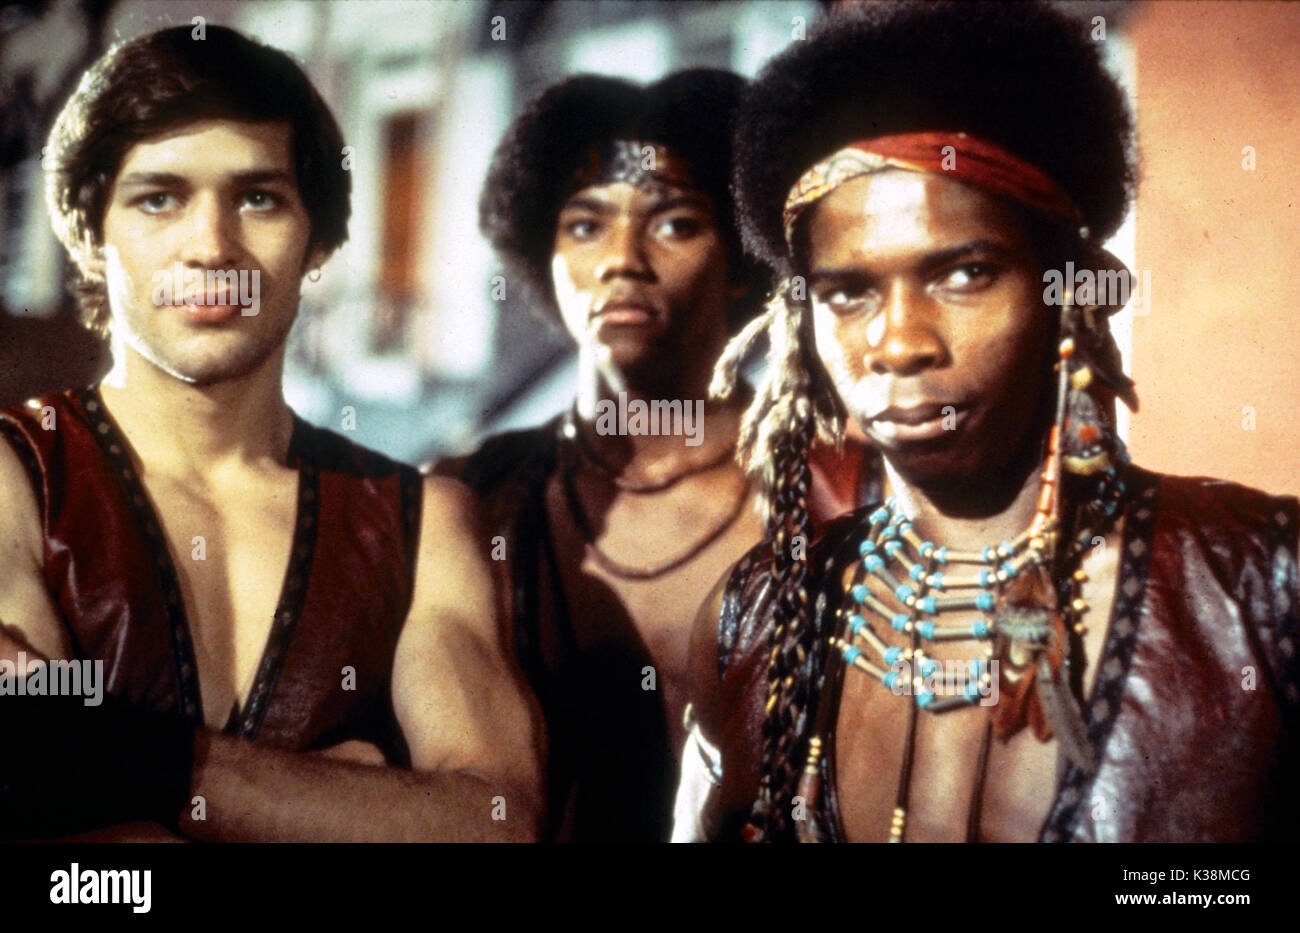 THE WARRIORS JAMES REMAR, BRIAN TYLER, DAVID HARRIS     Date: 1979 Stock Photo